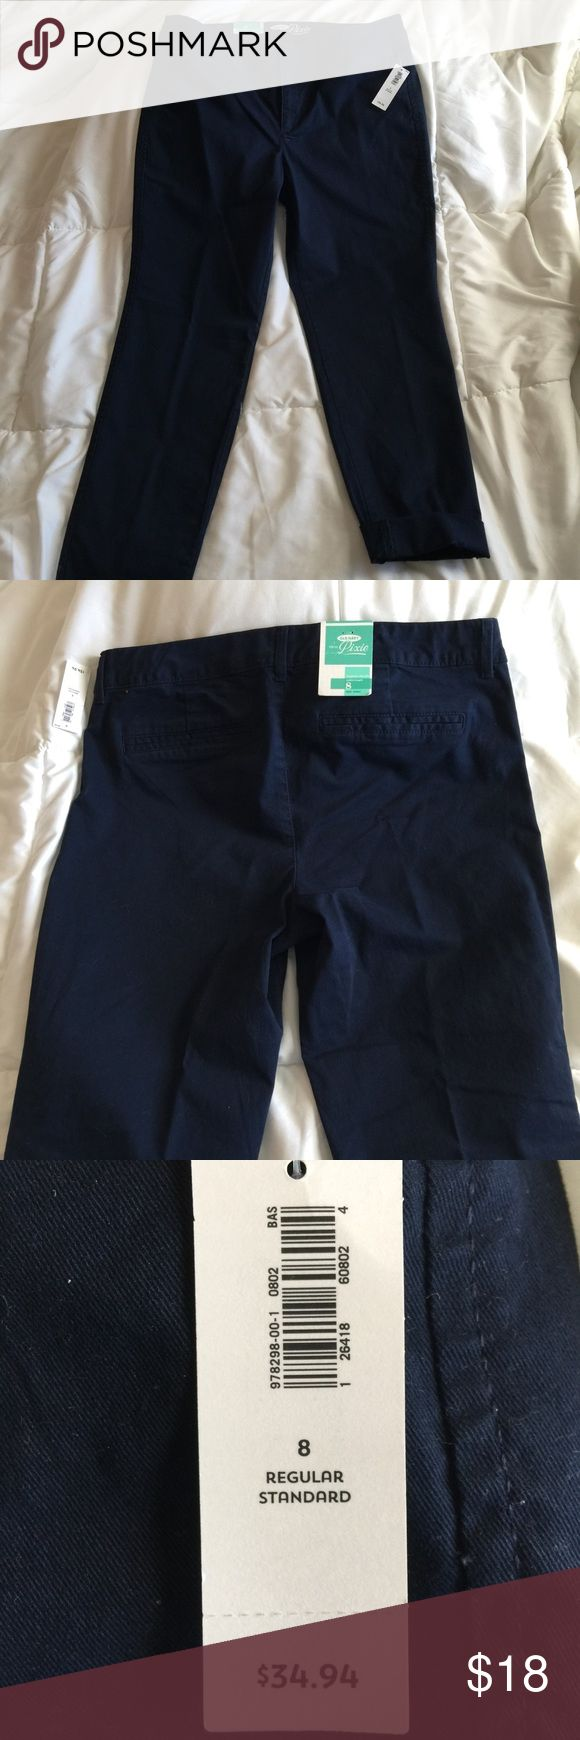 NWT Old Navy ankle length pixie slacks pants 8 These slacks are brand new with the tags attached. Size 8 Old Navy Pants Ankle & Cropped